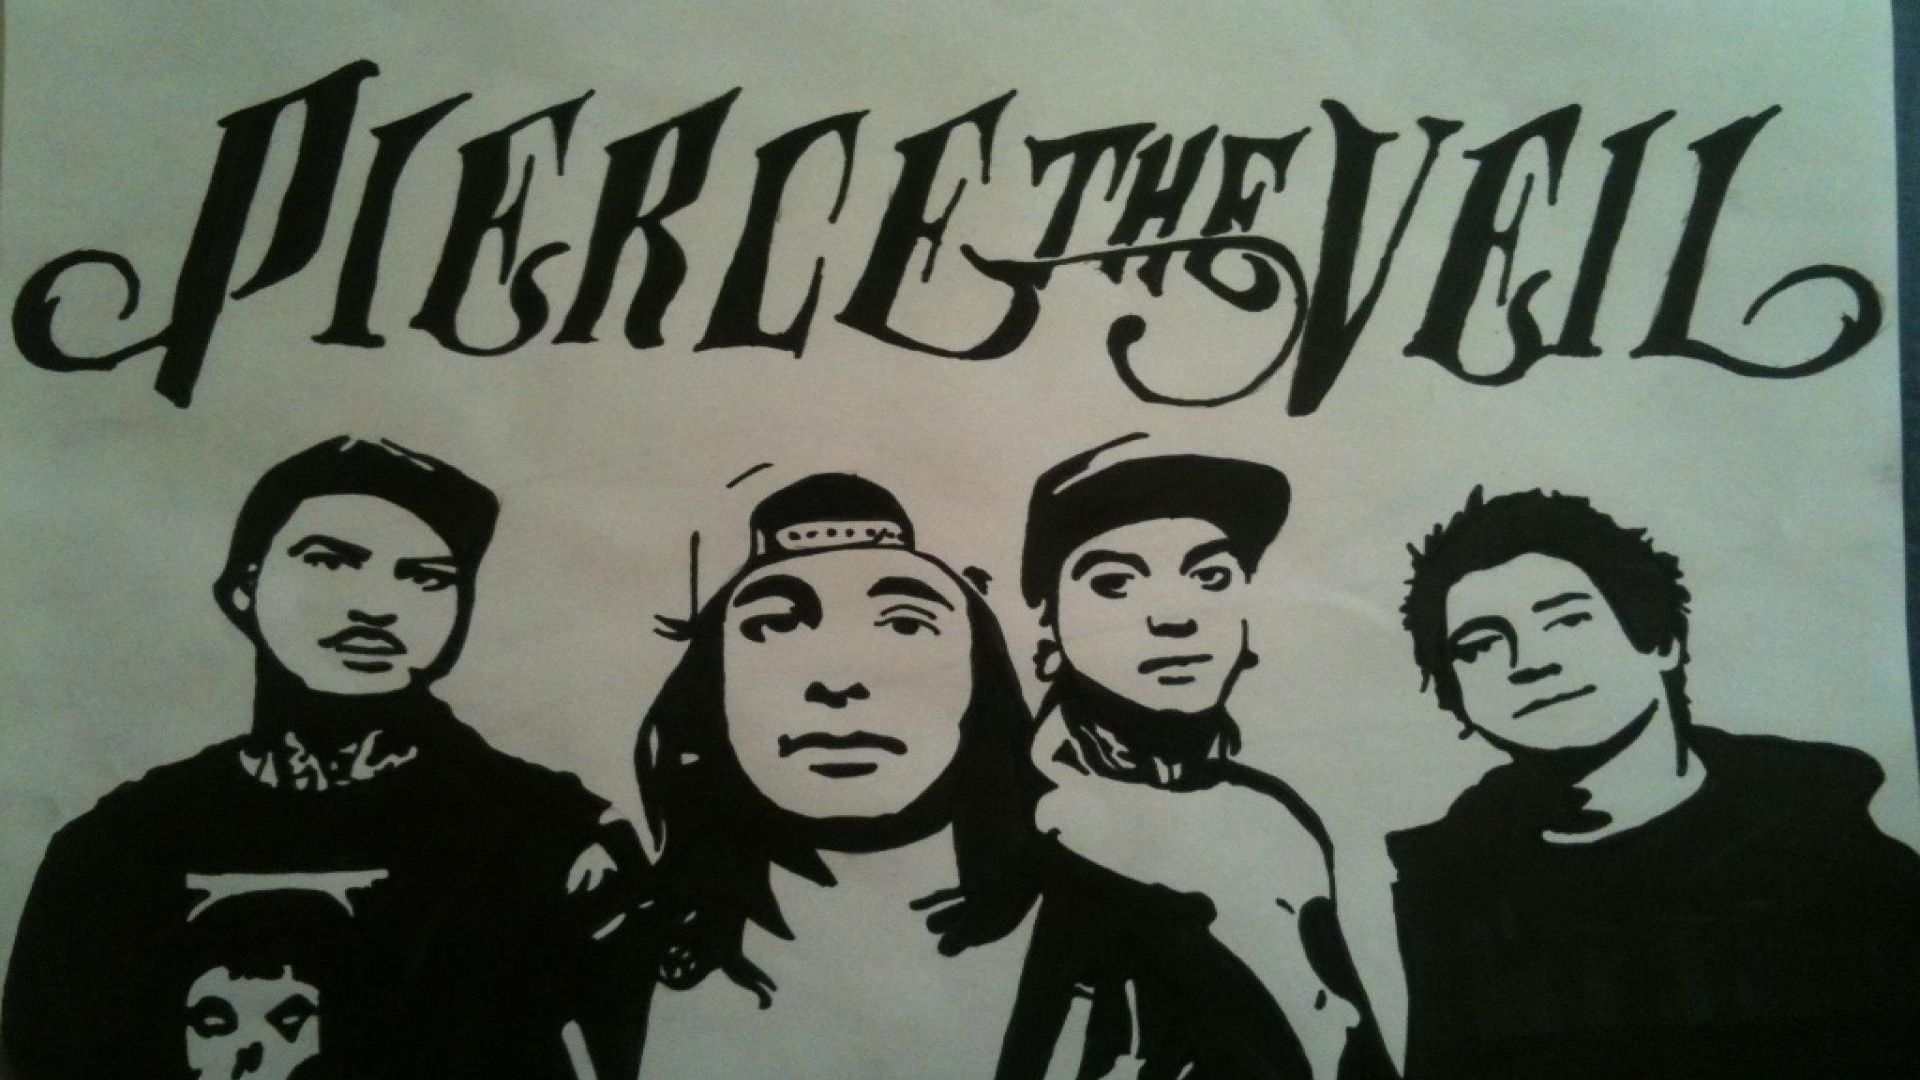 Pierce The Veil Wallpapers Top Free Pierce The Veil Backgrounds